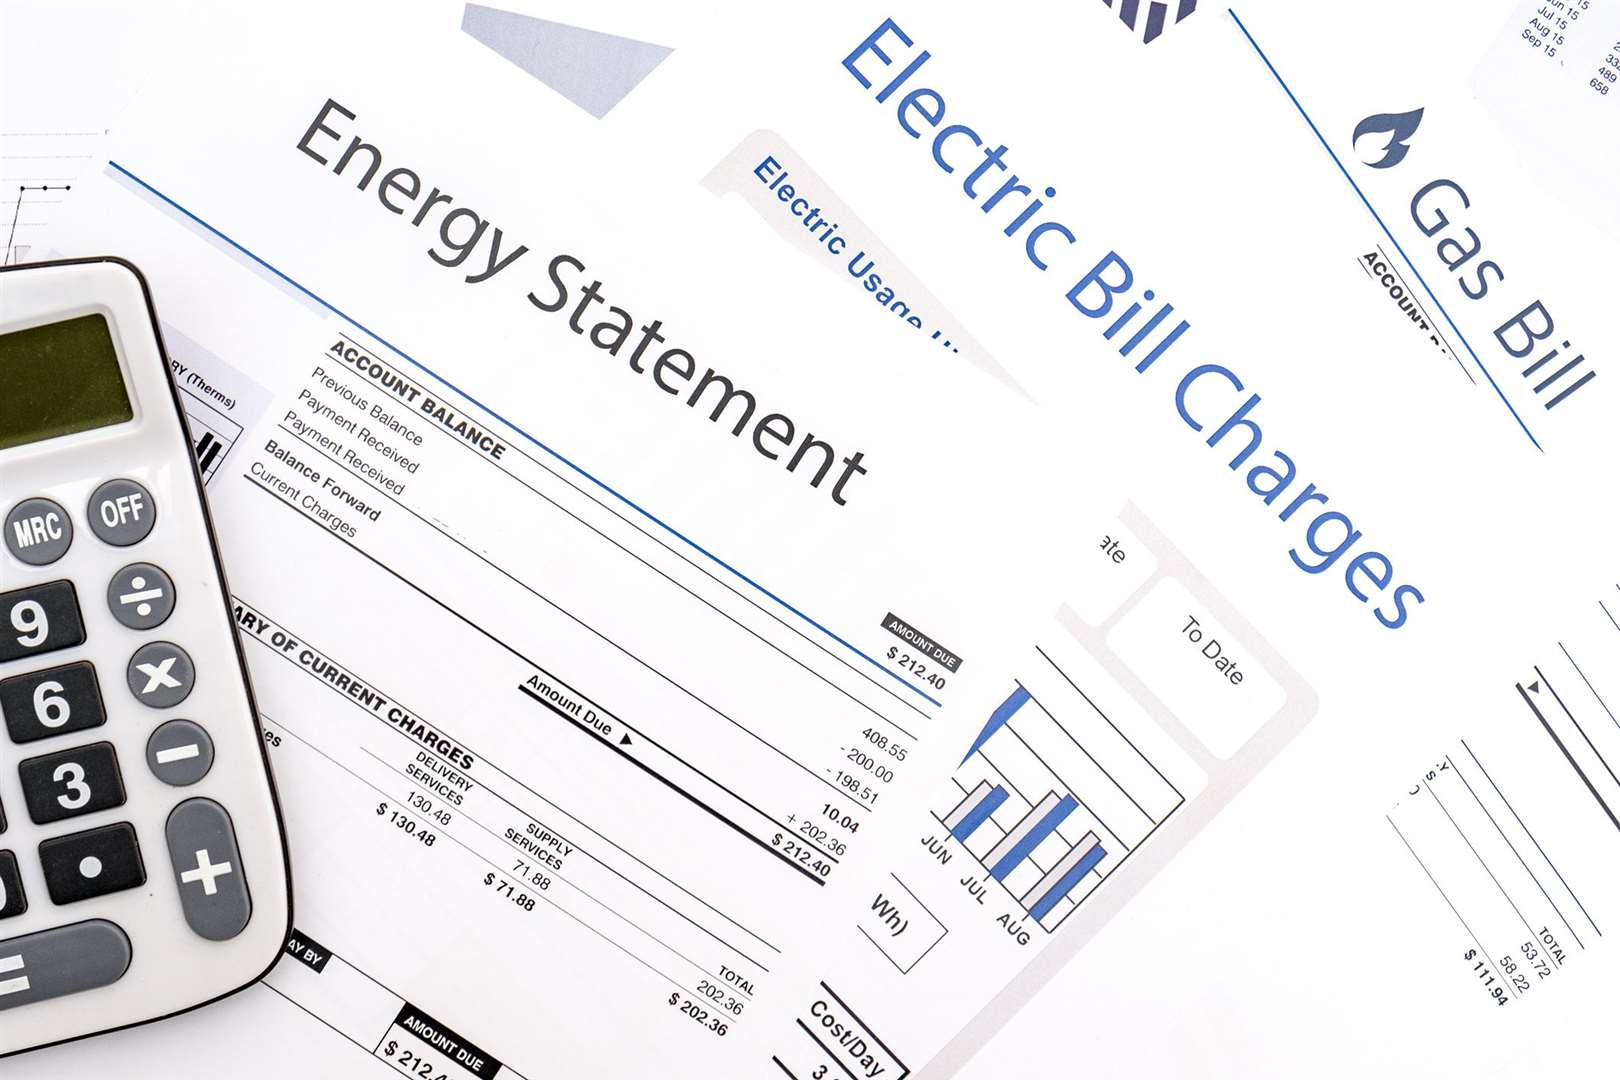 Energy bills are set to rise this winter with an increase to the energy price cap